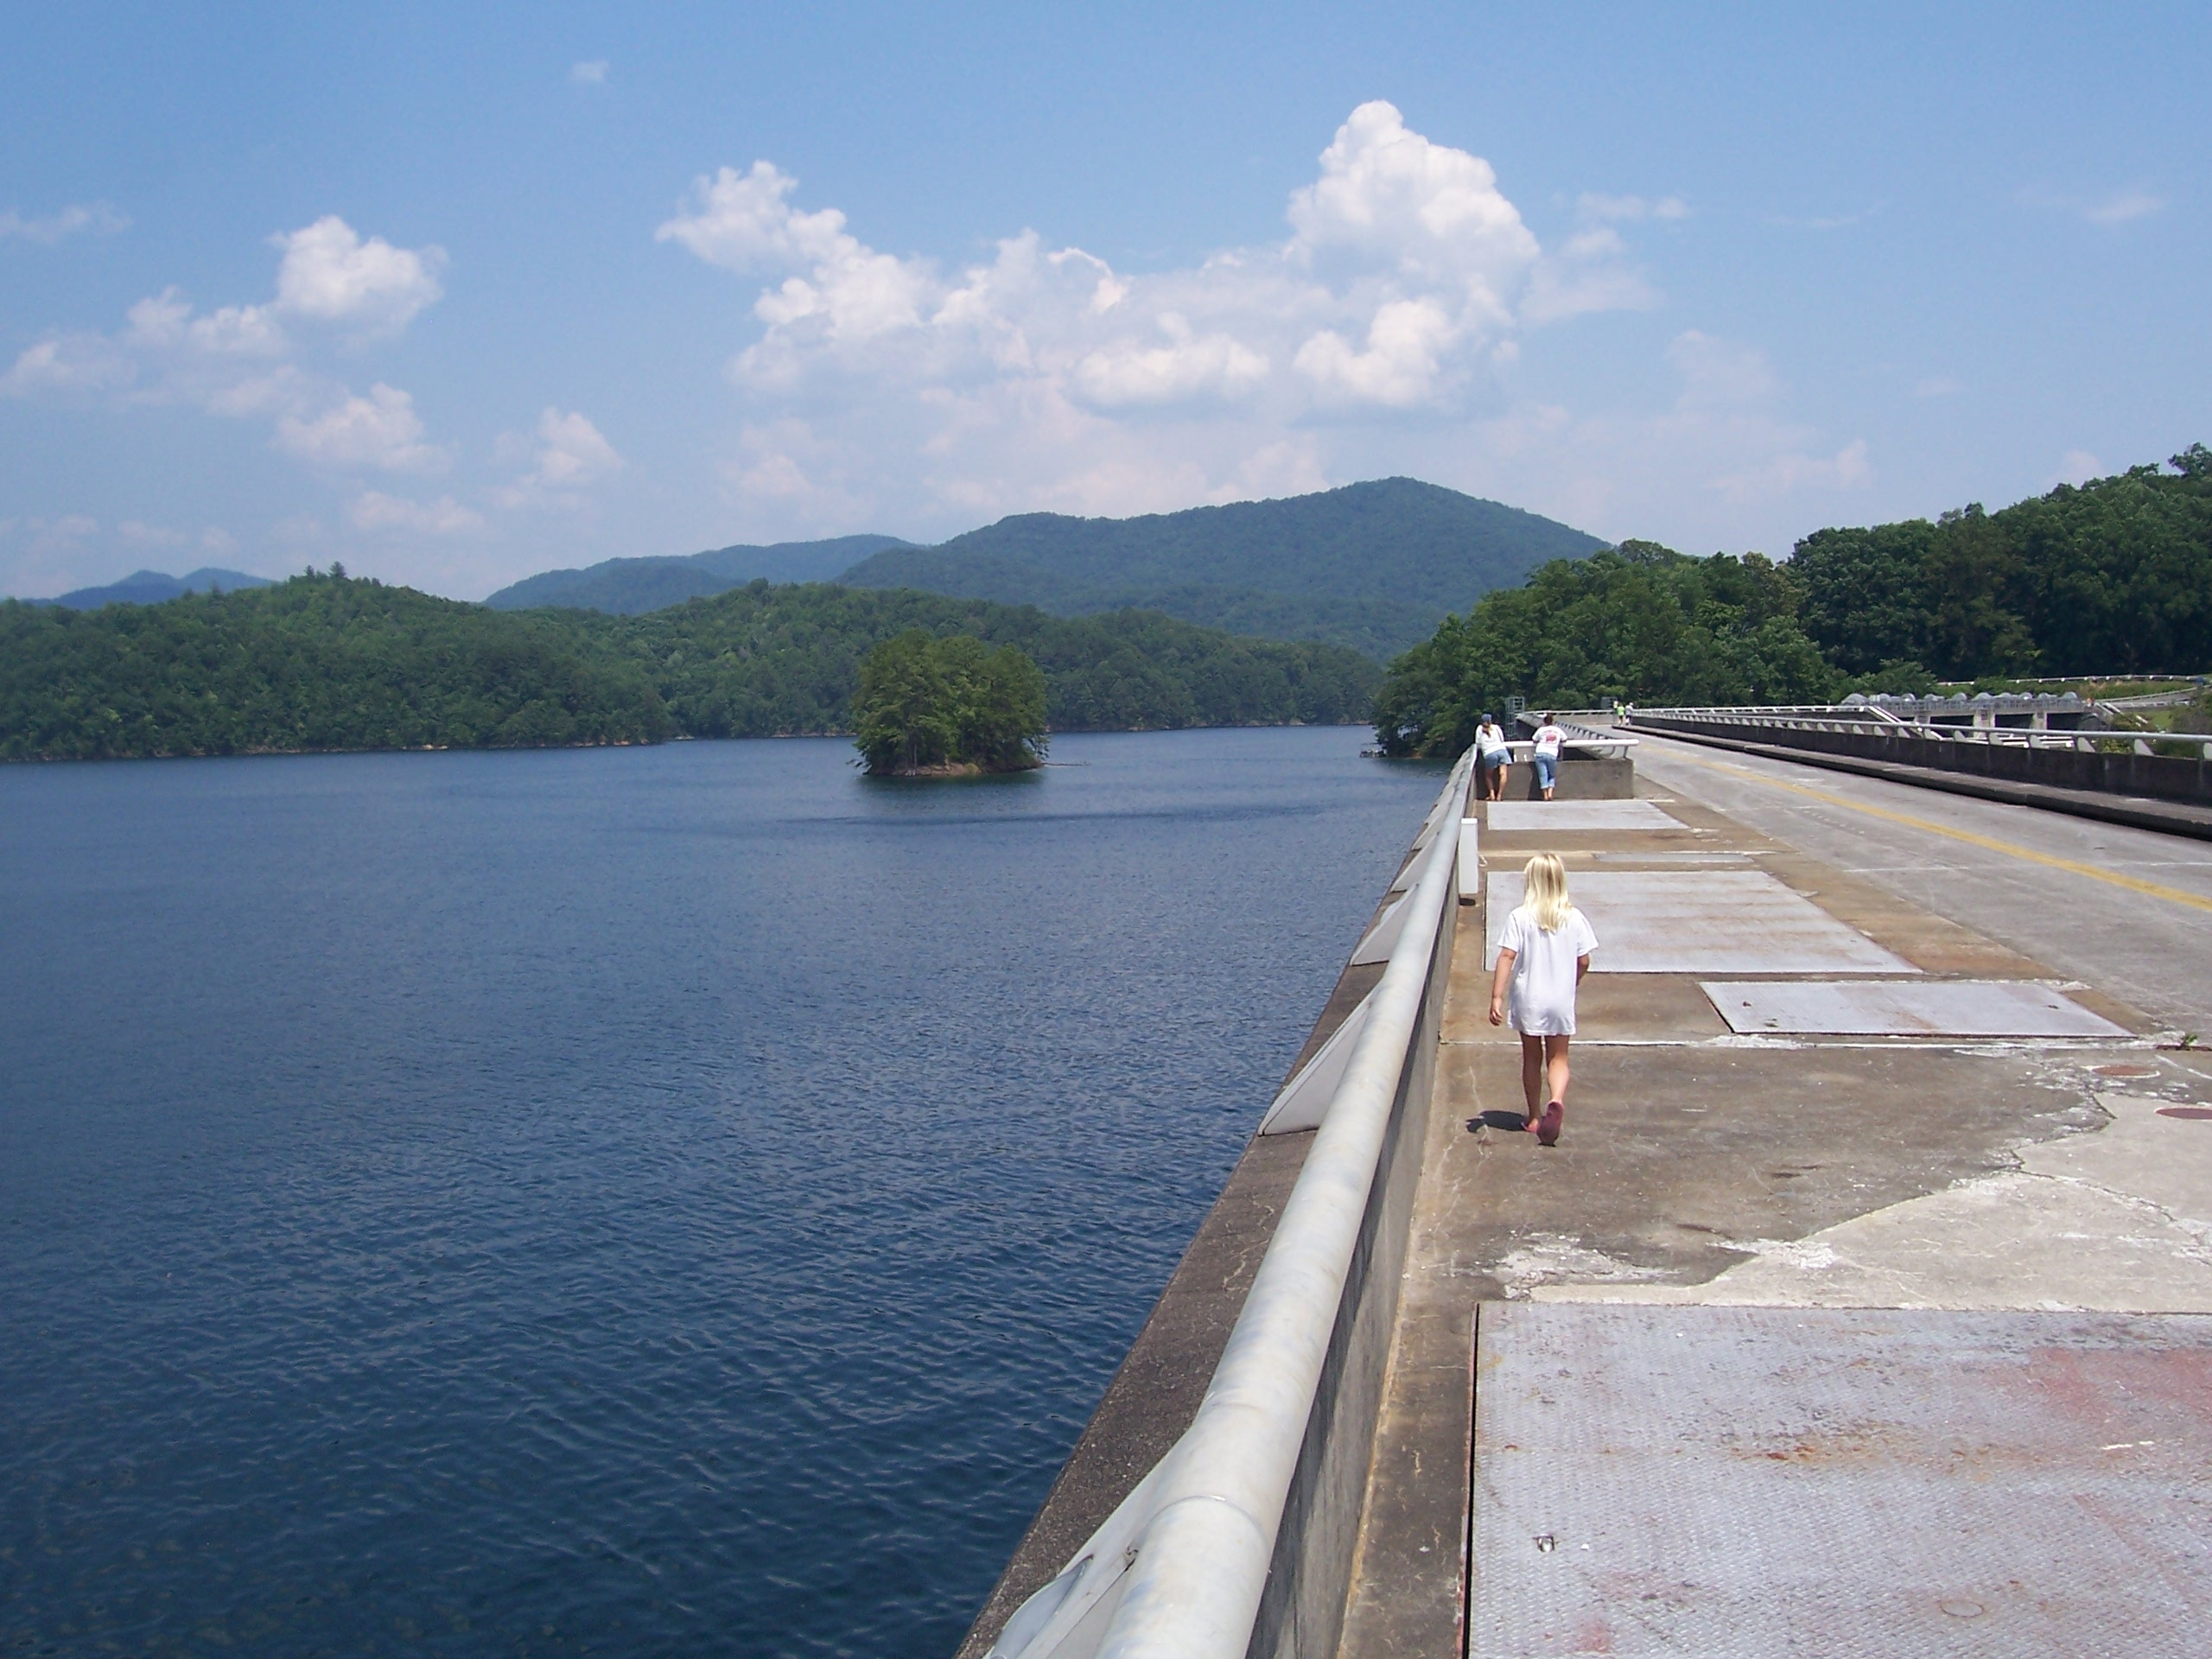 Road / walkway on top of dam.